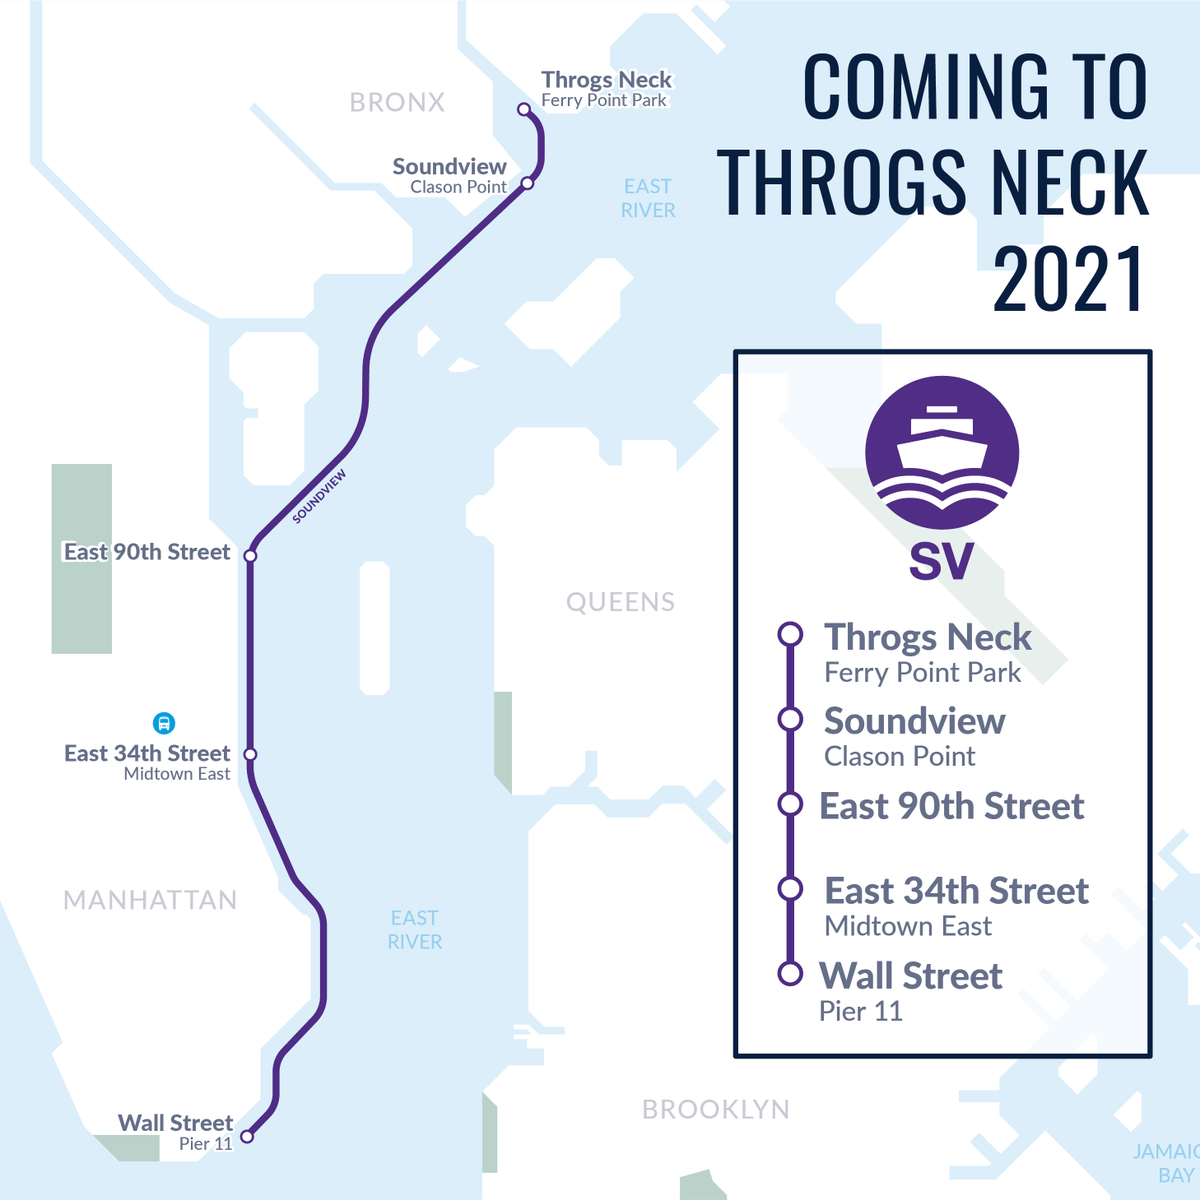 NYC Ferry Officially Expanding to Throggs Neck